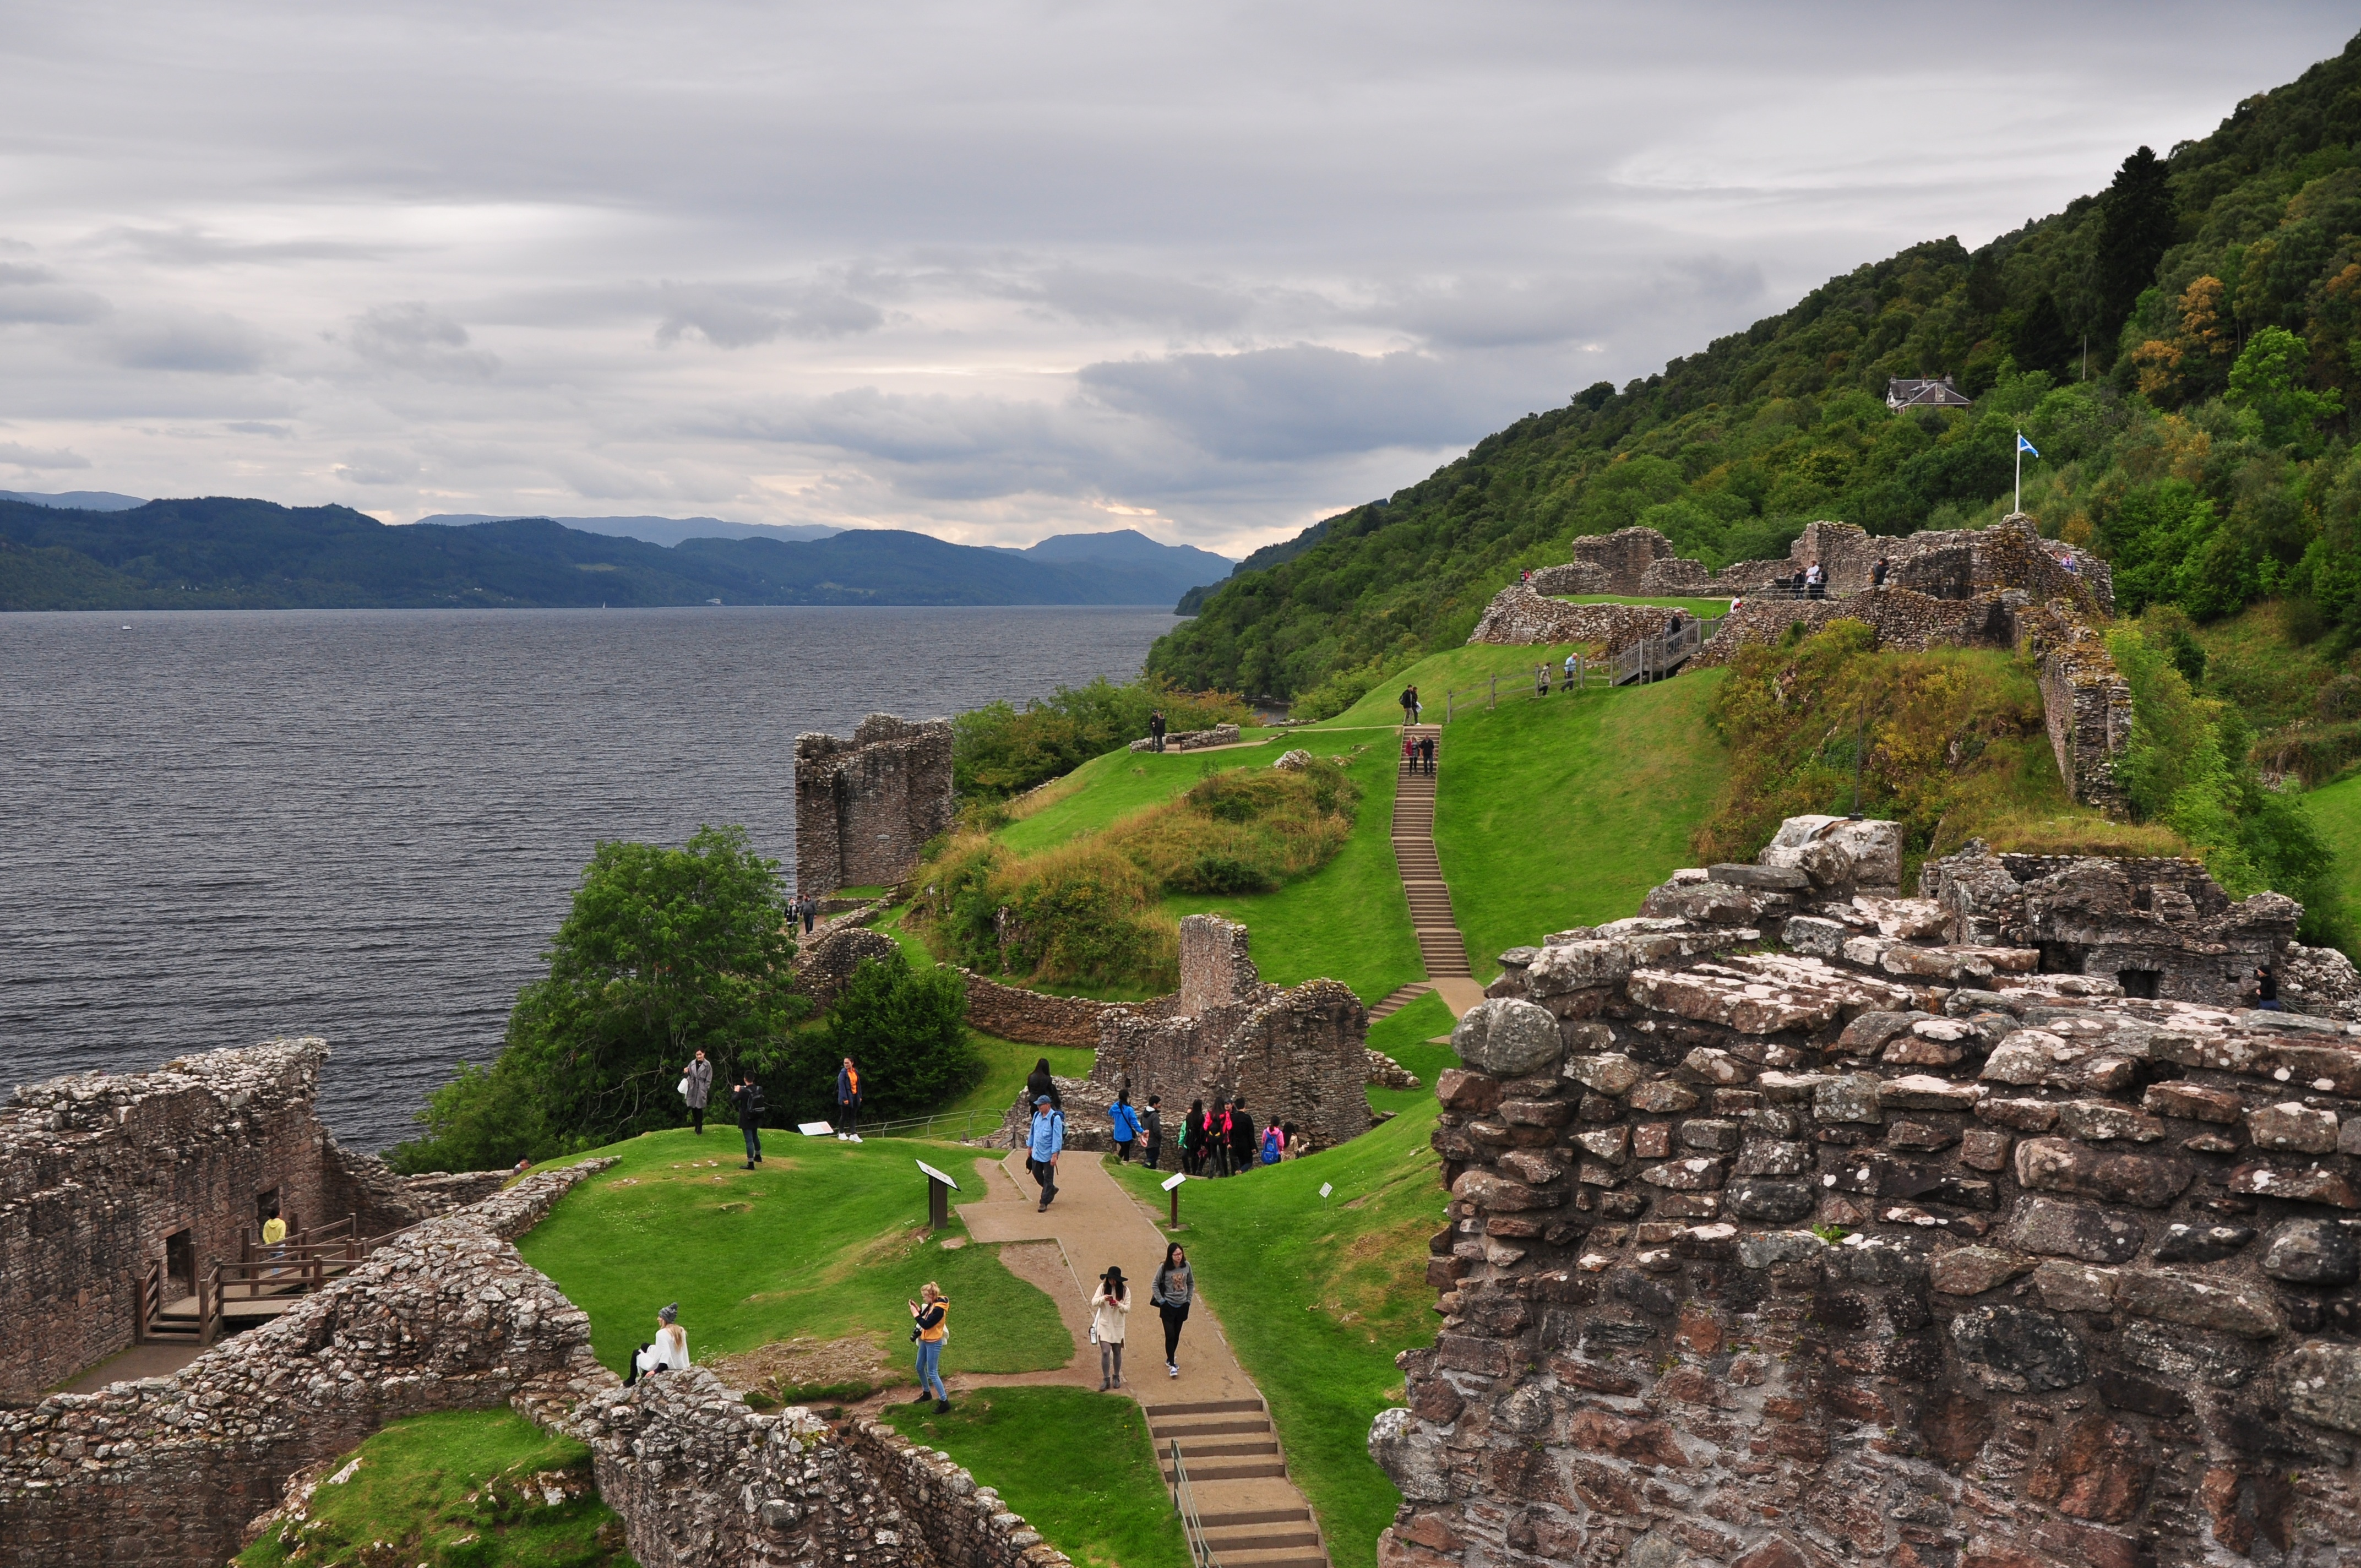 clouds-over-urquhart-castle-and-the-loch-ness.jpg